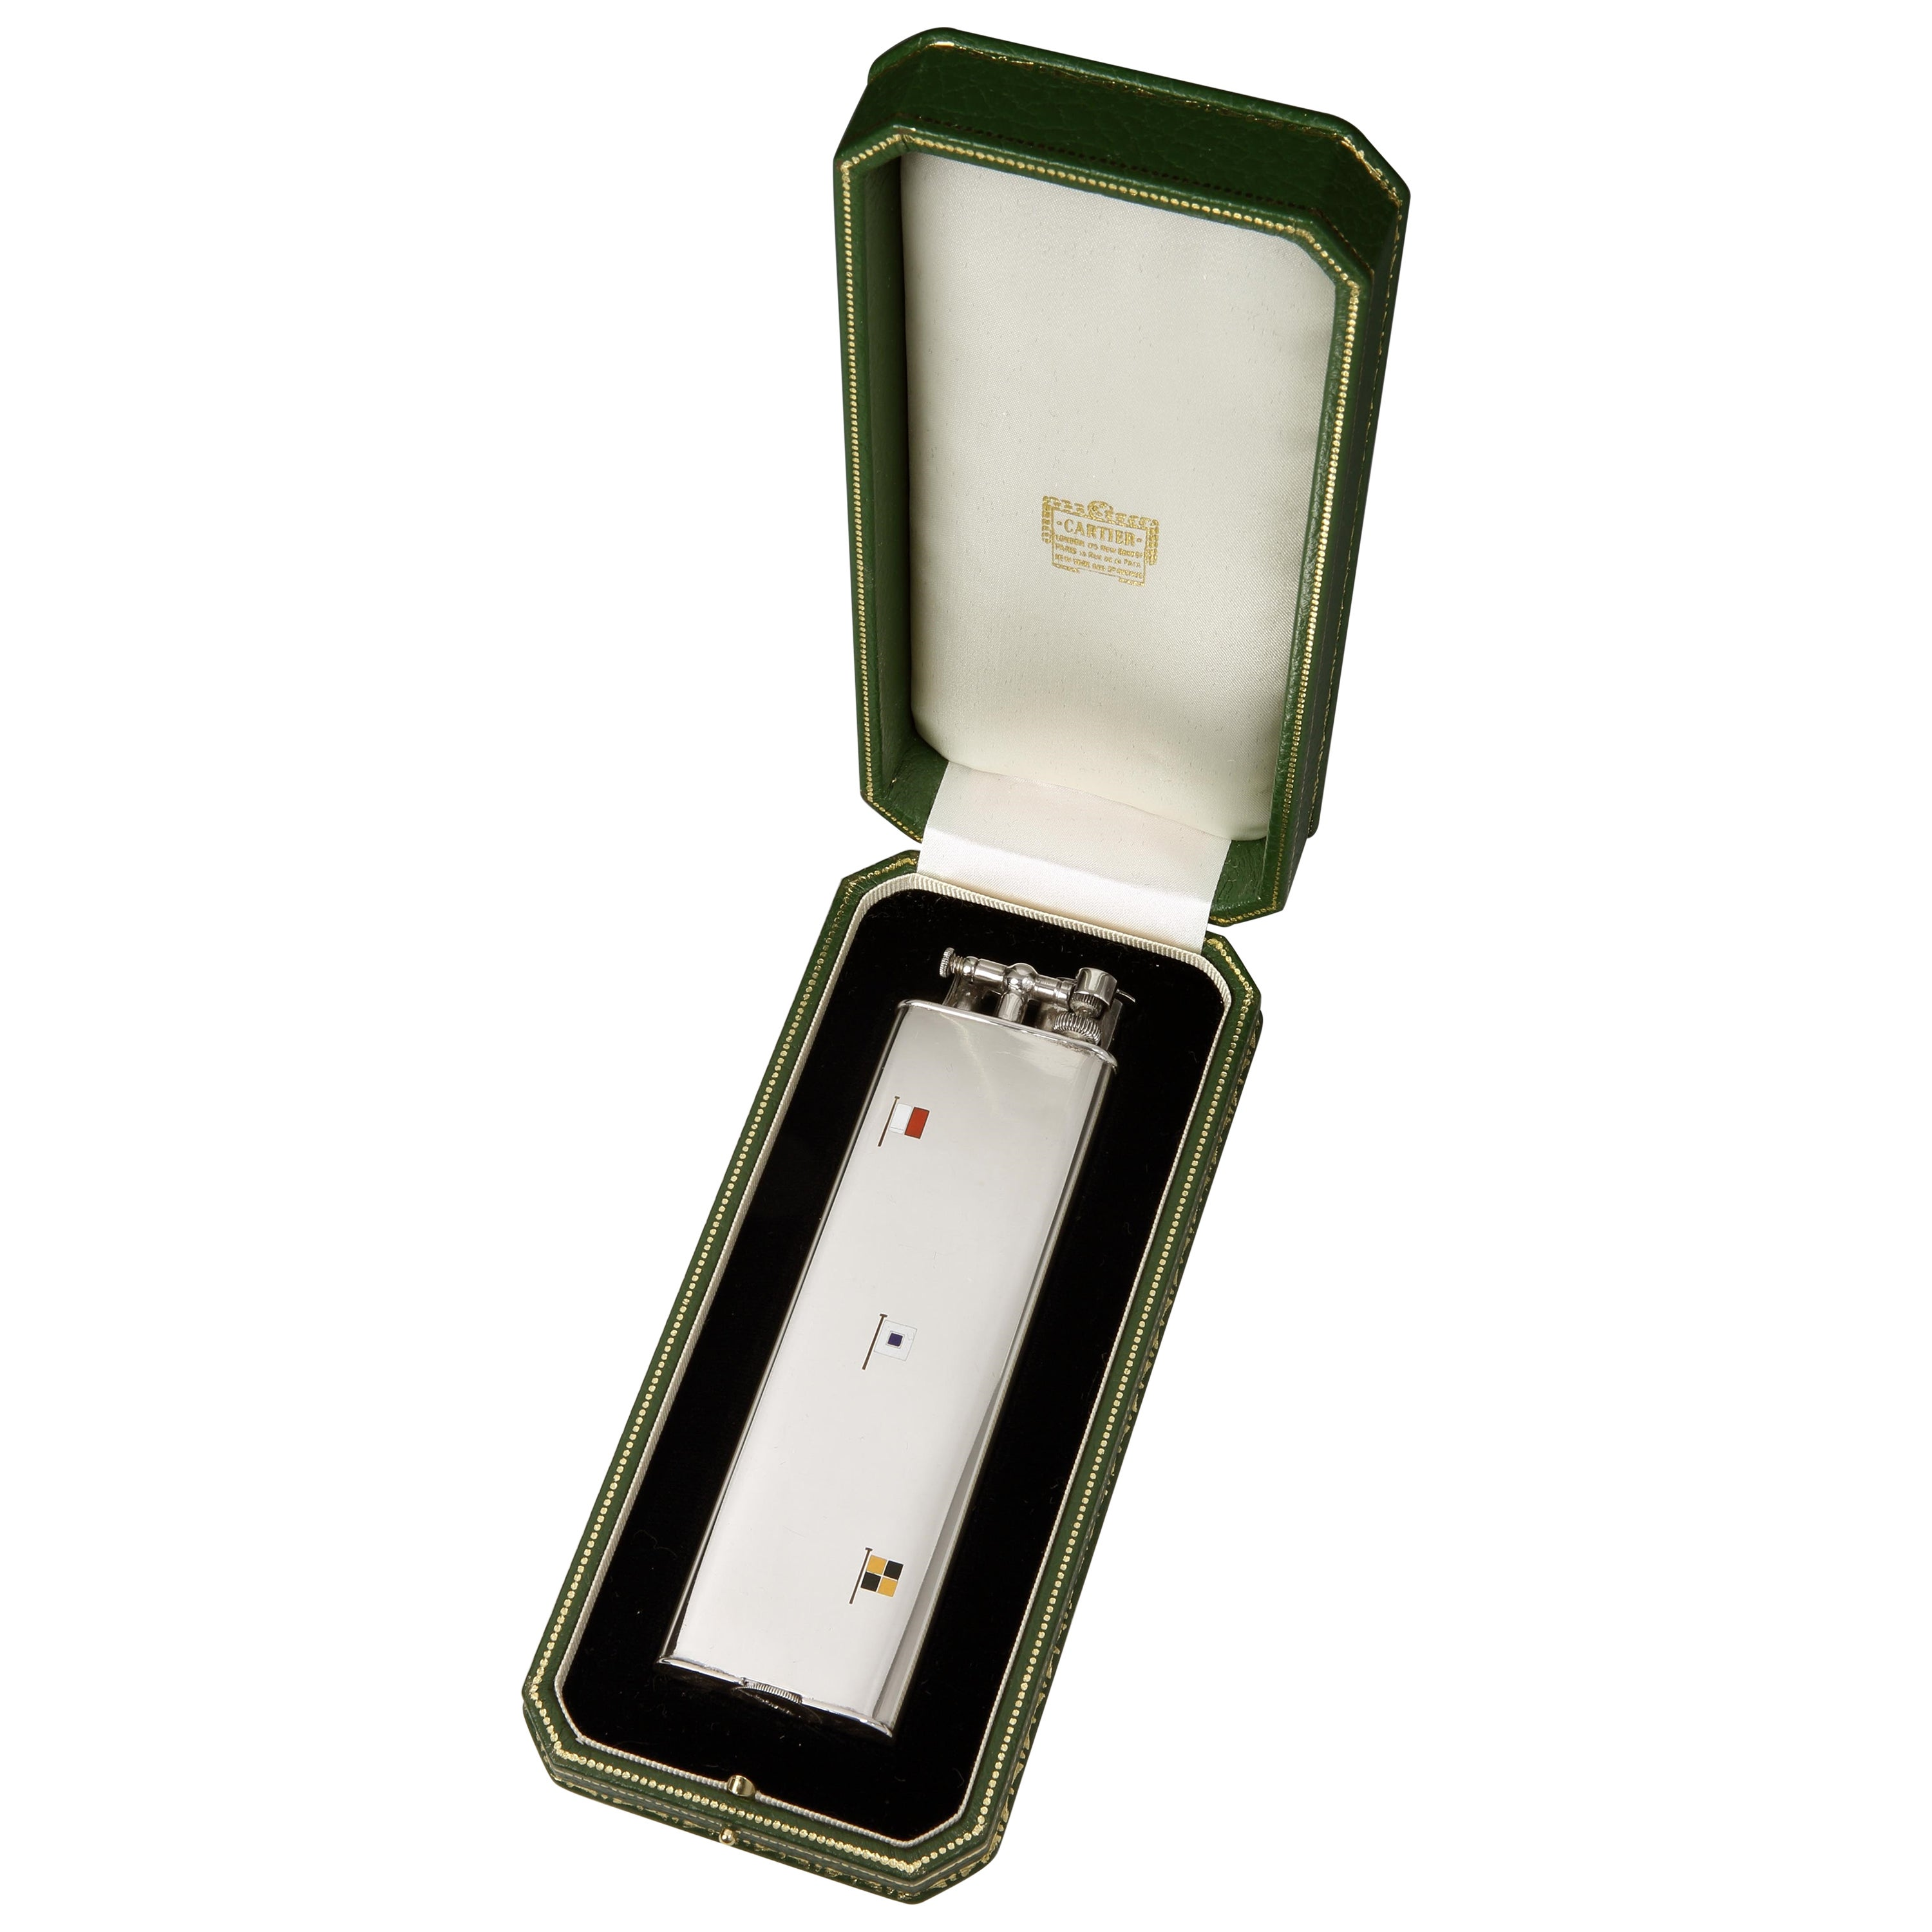 Dunhill for Cartier Art Deco Sterling Silver Lighter, with Enamel Flags